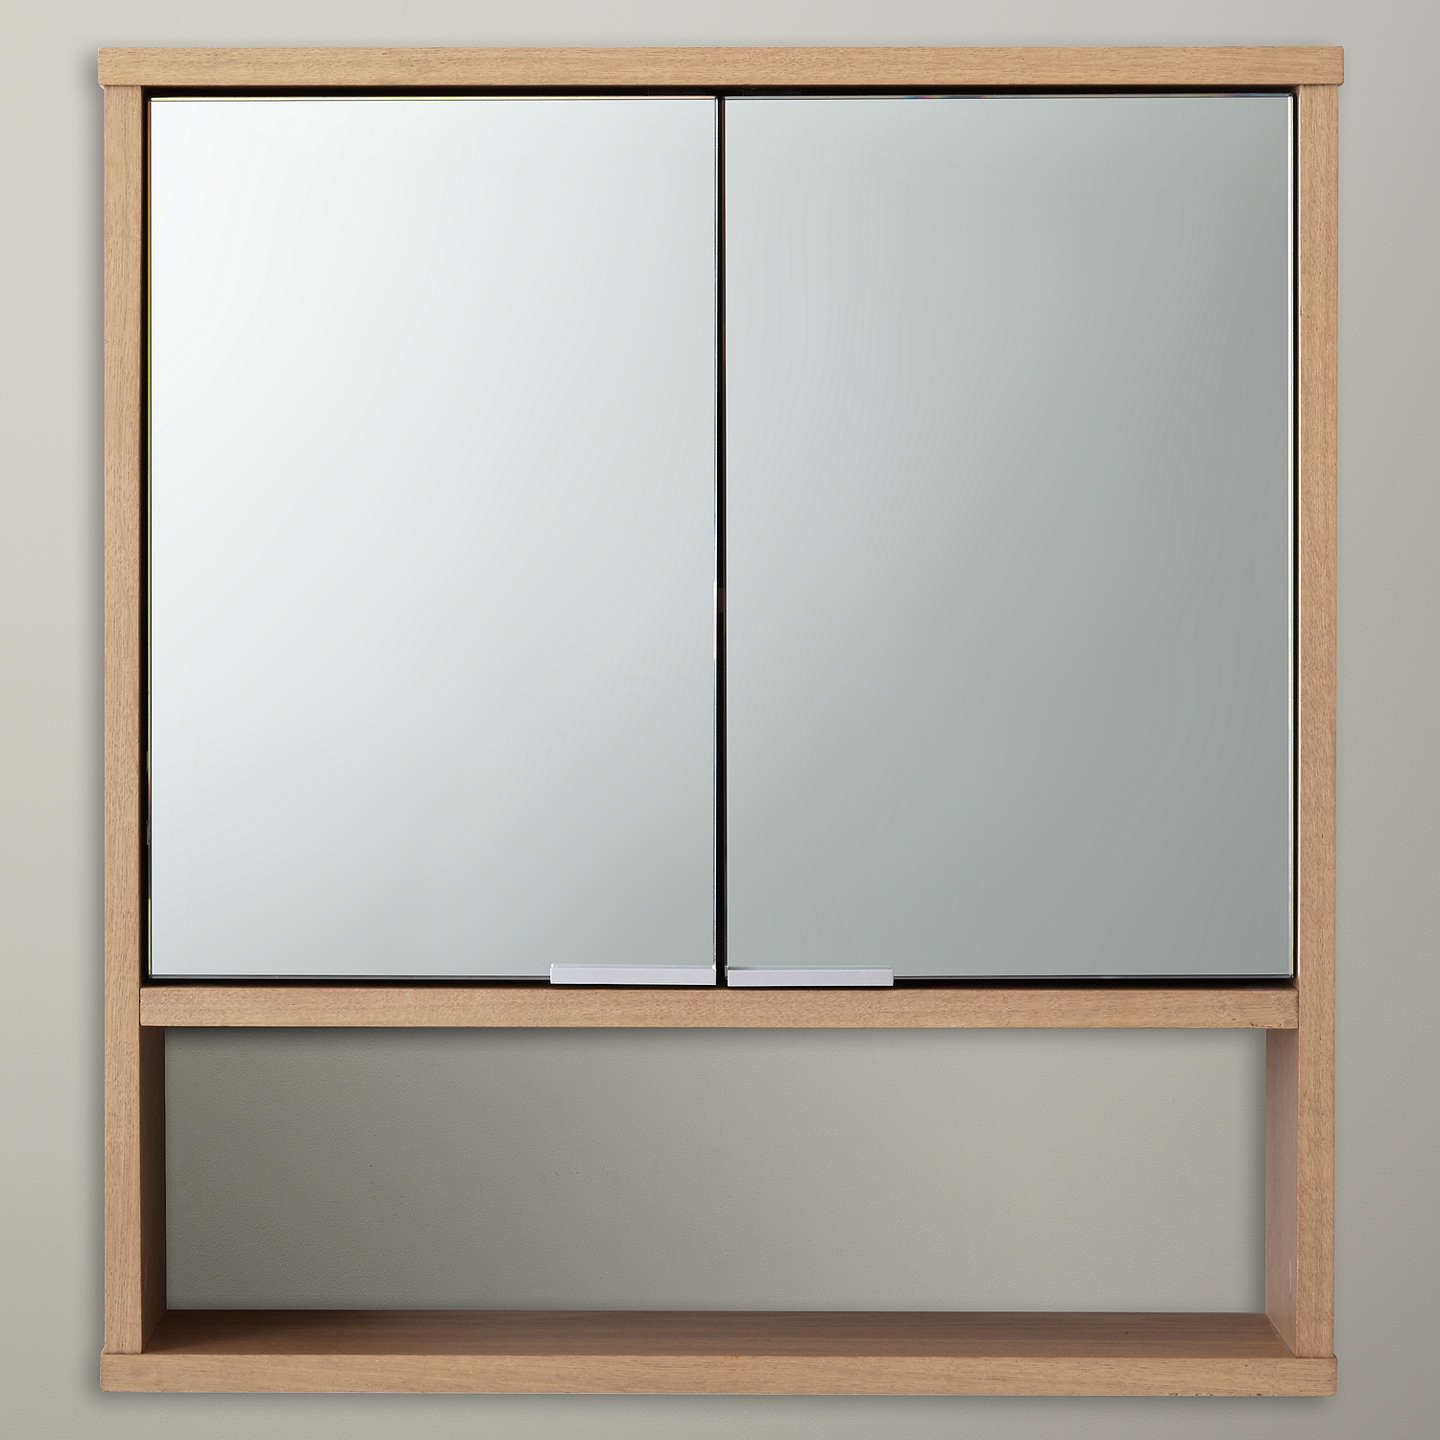 BuyDesign Project By John Lewis No.008 Double Mirrored Bathroom Wall Cabinet  Online At Johnlewis ...